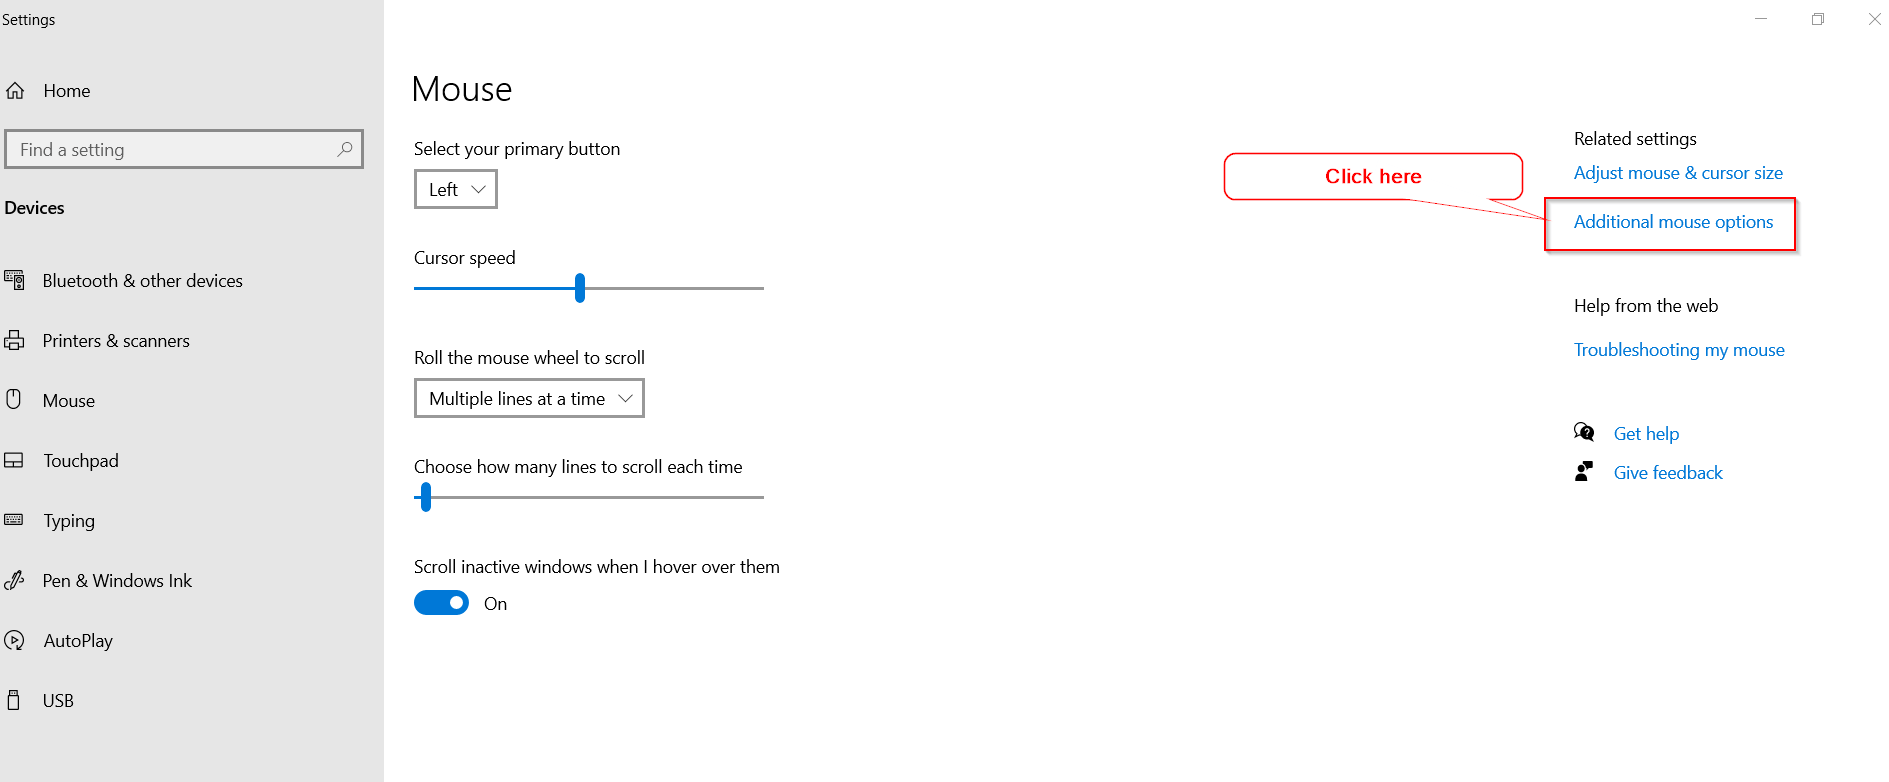 Additional-mouse-options